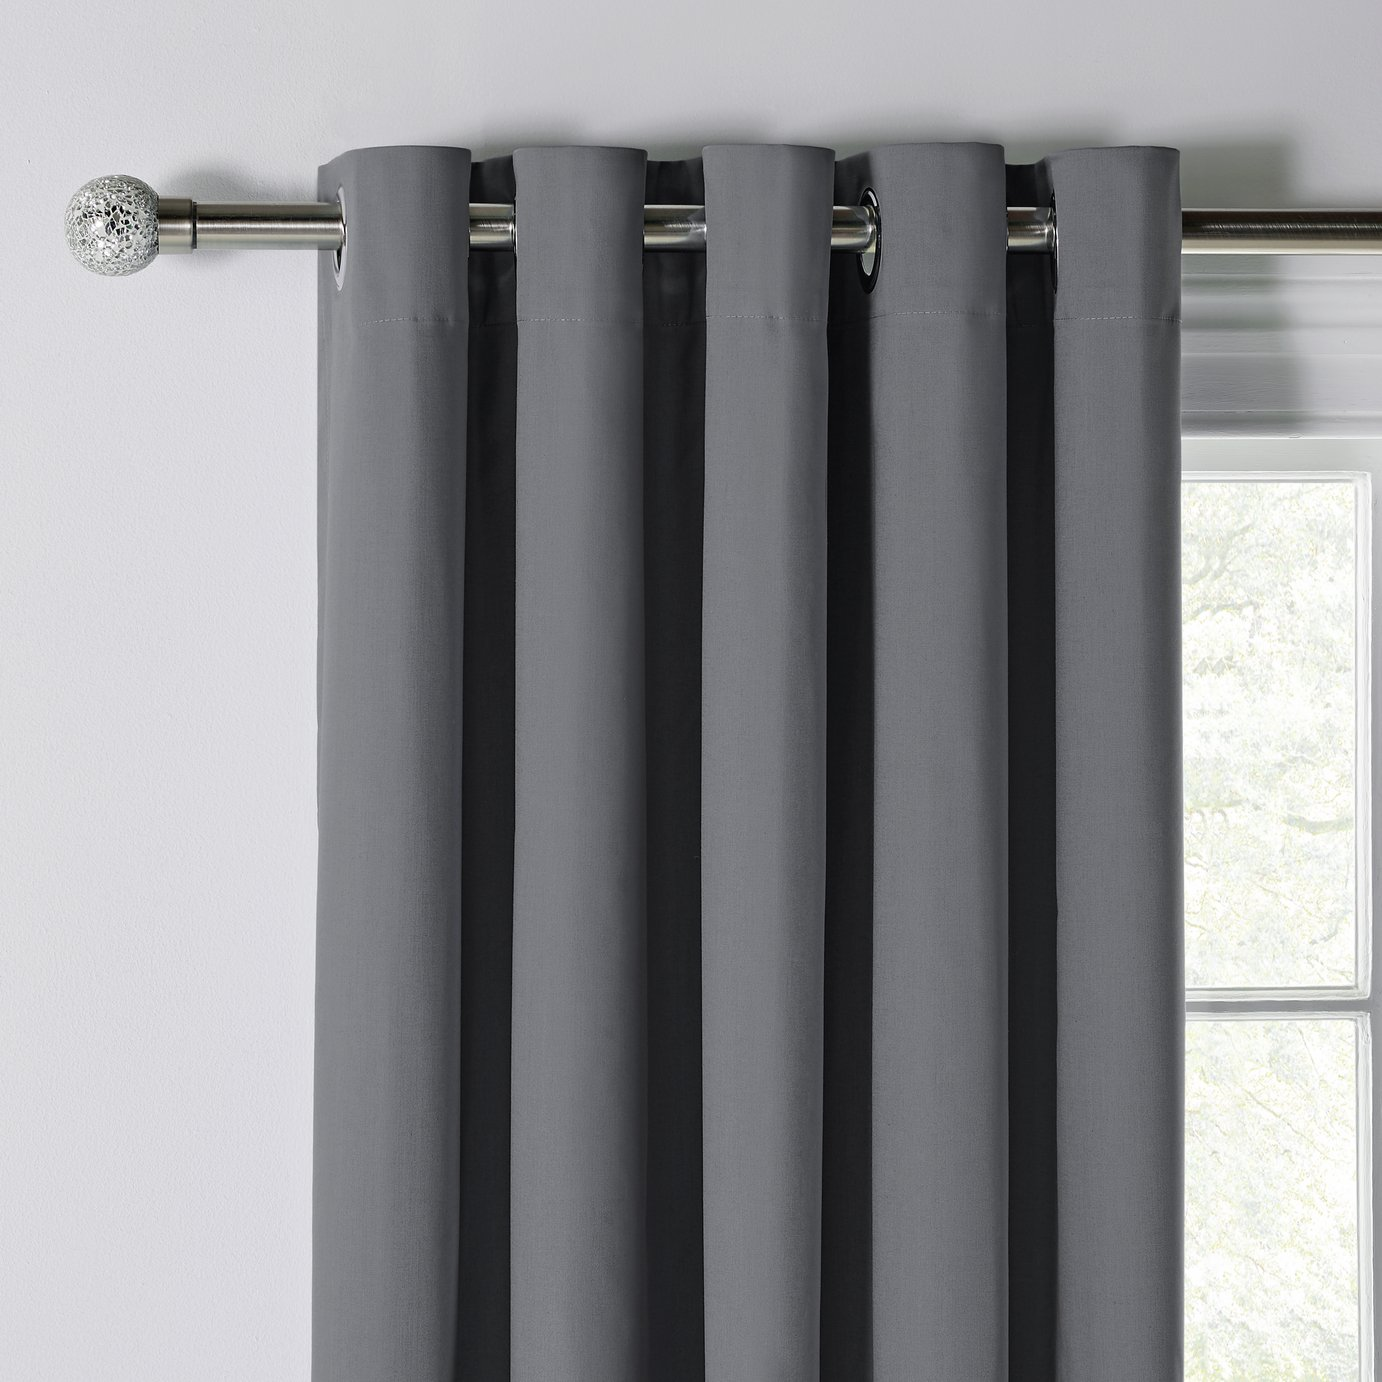 Grey Thermal Curtains Argos Home Blackout Thermal Curtains 117x137cm Flint Grey